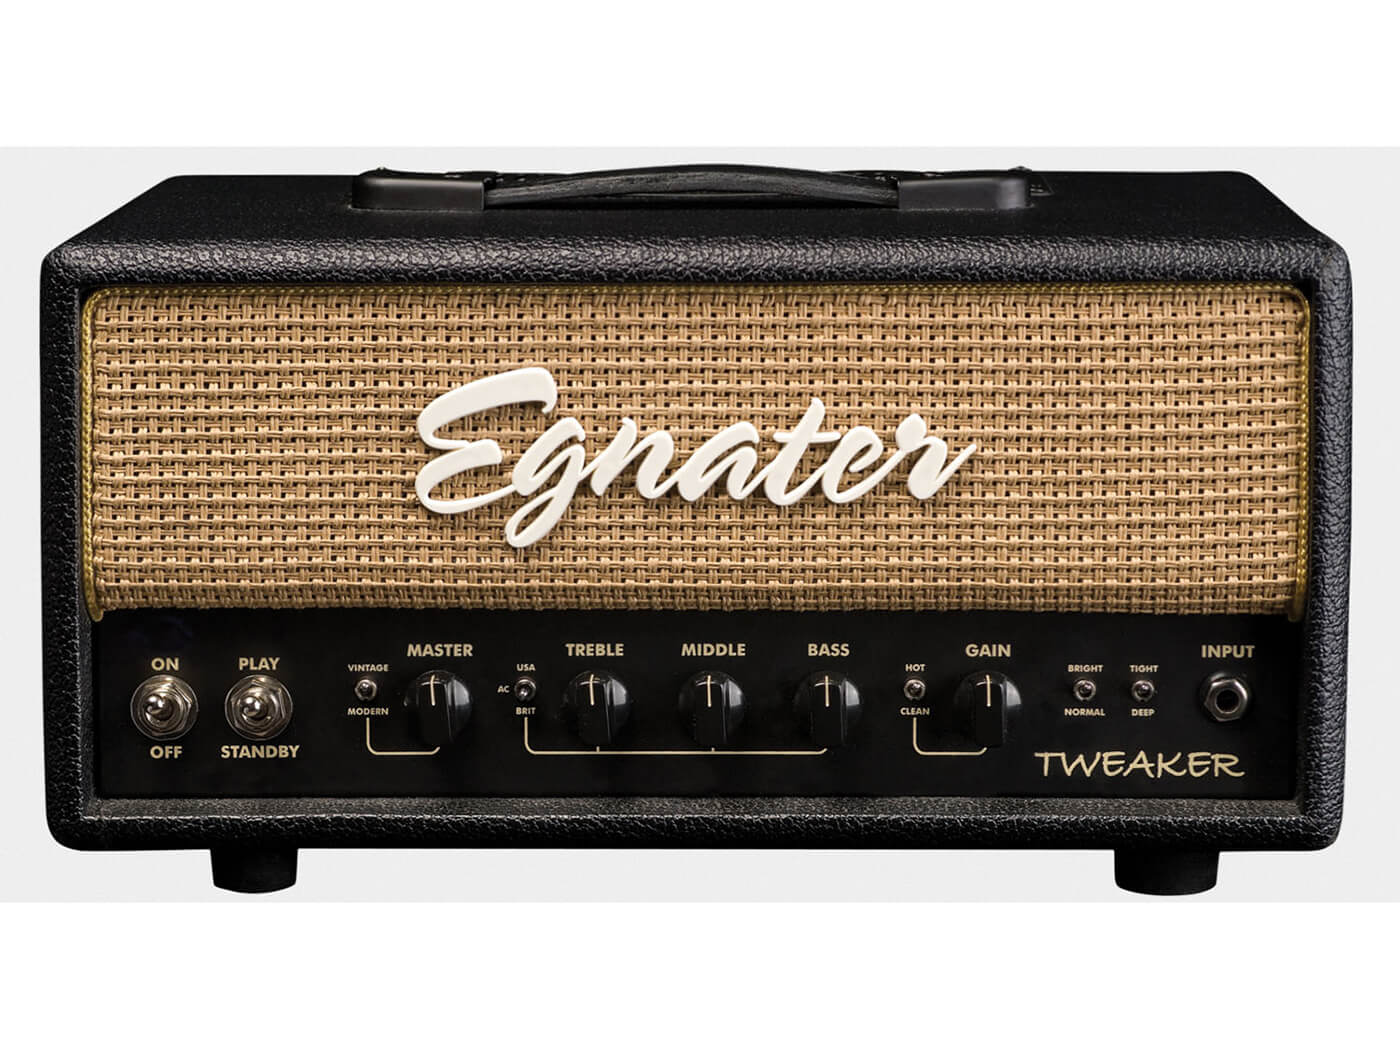 nine best budget tube amps under 500 to buy in 2019 all things guitar. Black Bedroom Furniture Sets. Home Design Ideas